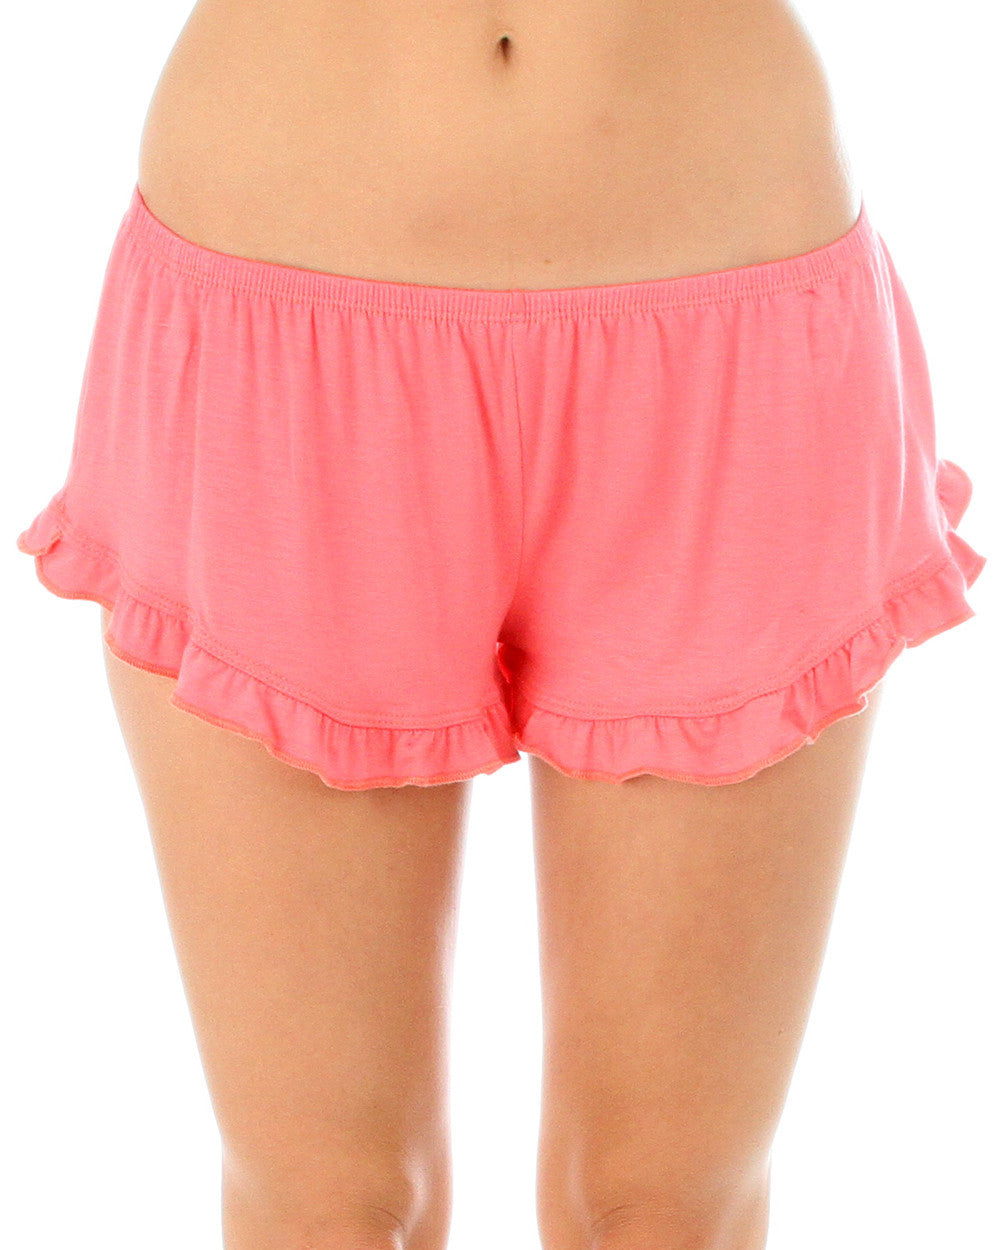 Vodi Shorts With Ruffle Trim In Coral